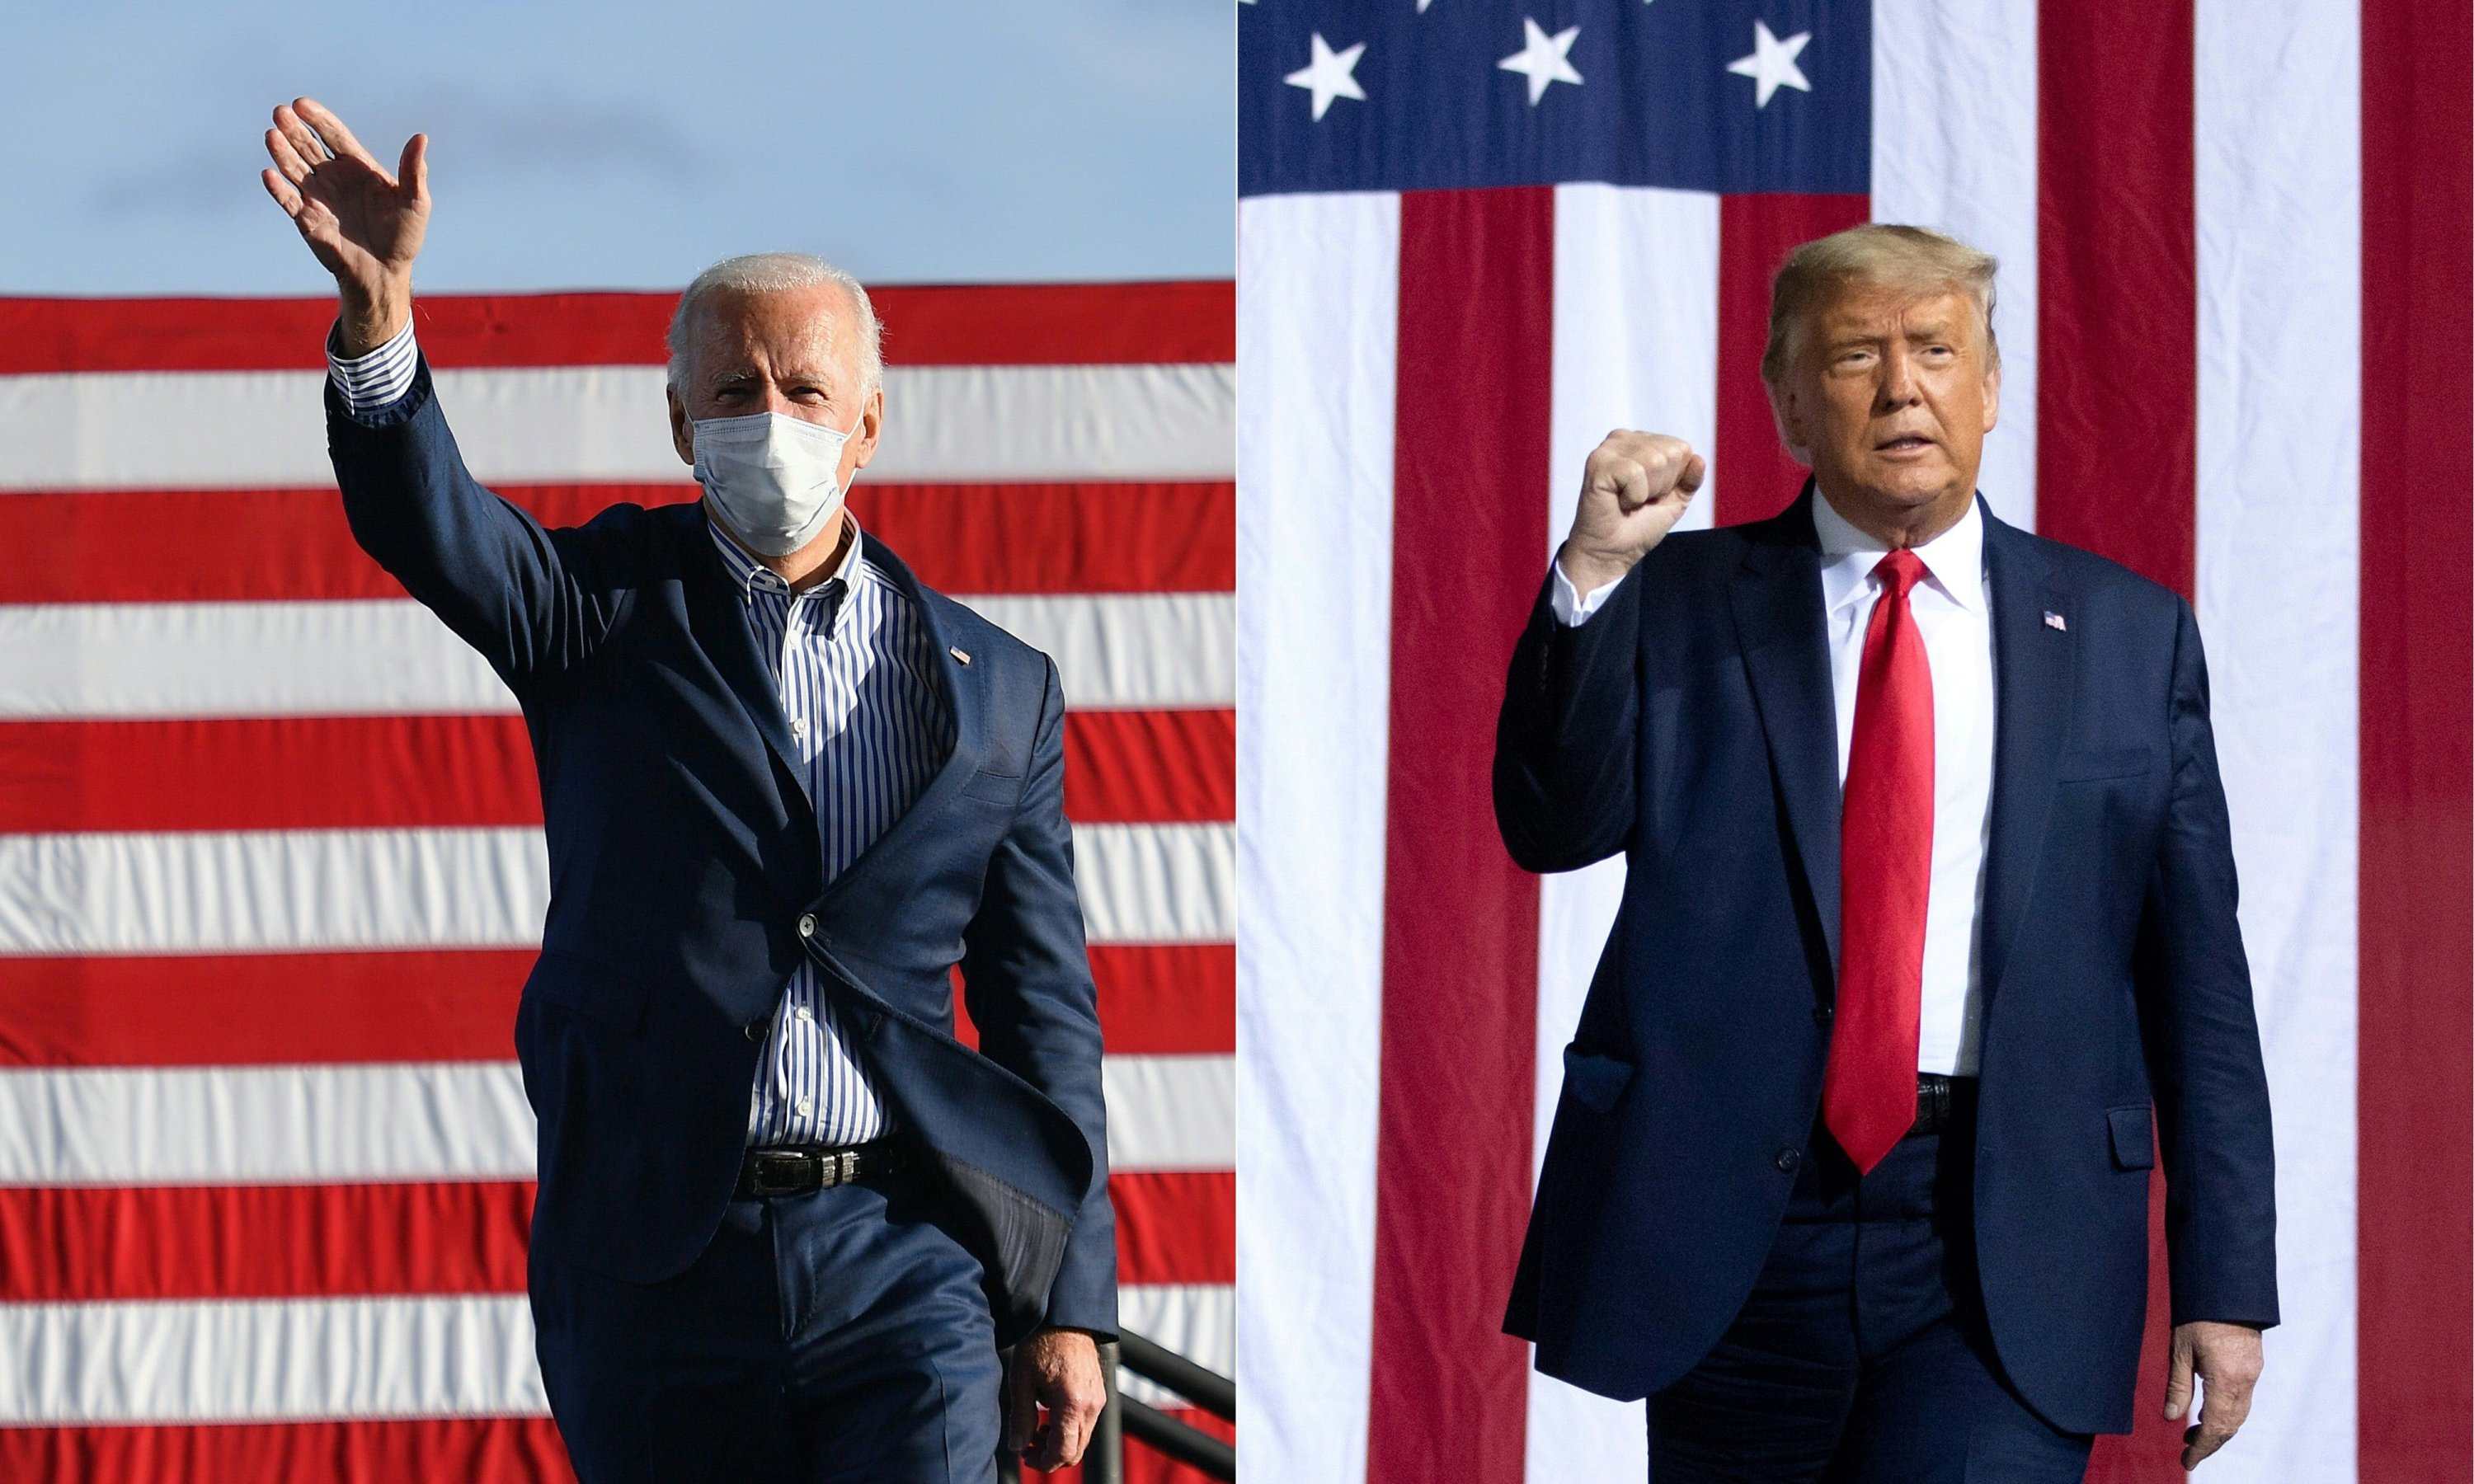 Vice President Joe Biden waves to supporters and U.S. President Donald Trump arrives to hold a Make America Great Again rally as he campaigns in Gastonia, North Carolina, U.S., Oct. 21, 2020. (AFP Photo)